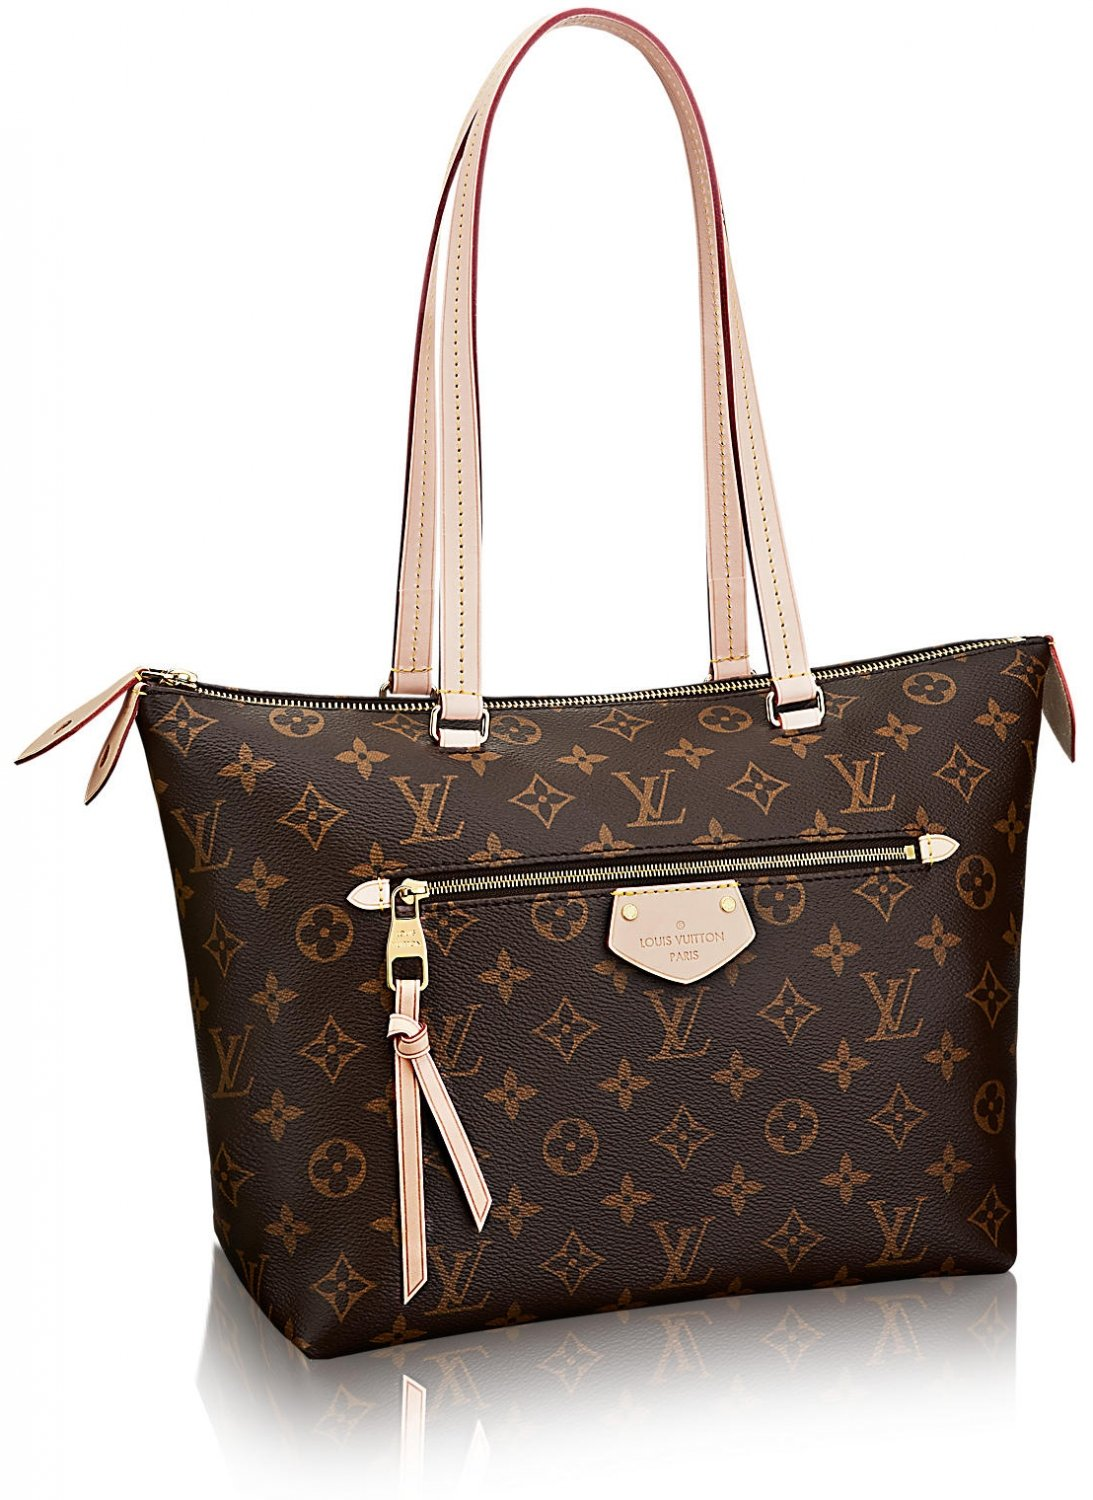 Louis-Vuitton-Iena-pm-Bag